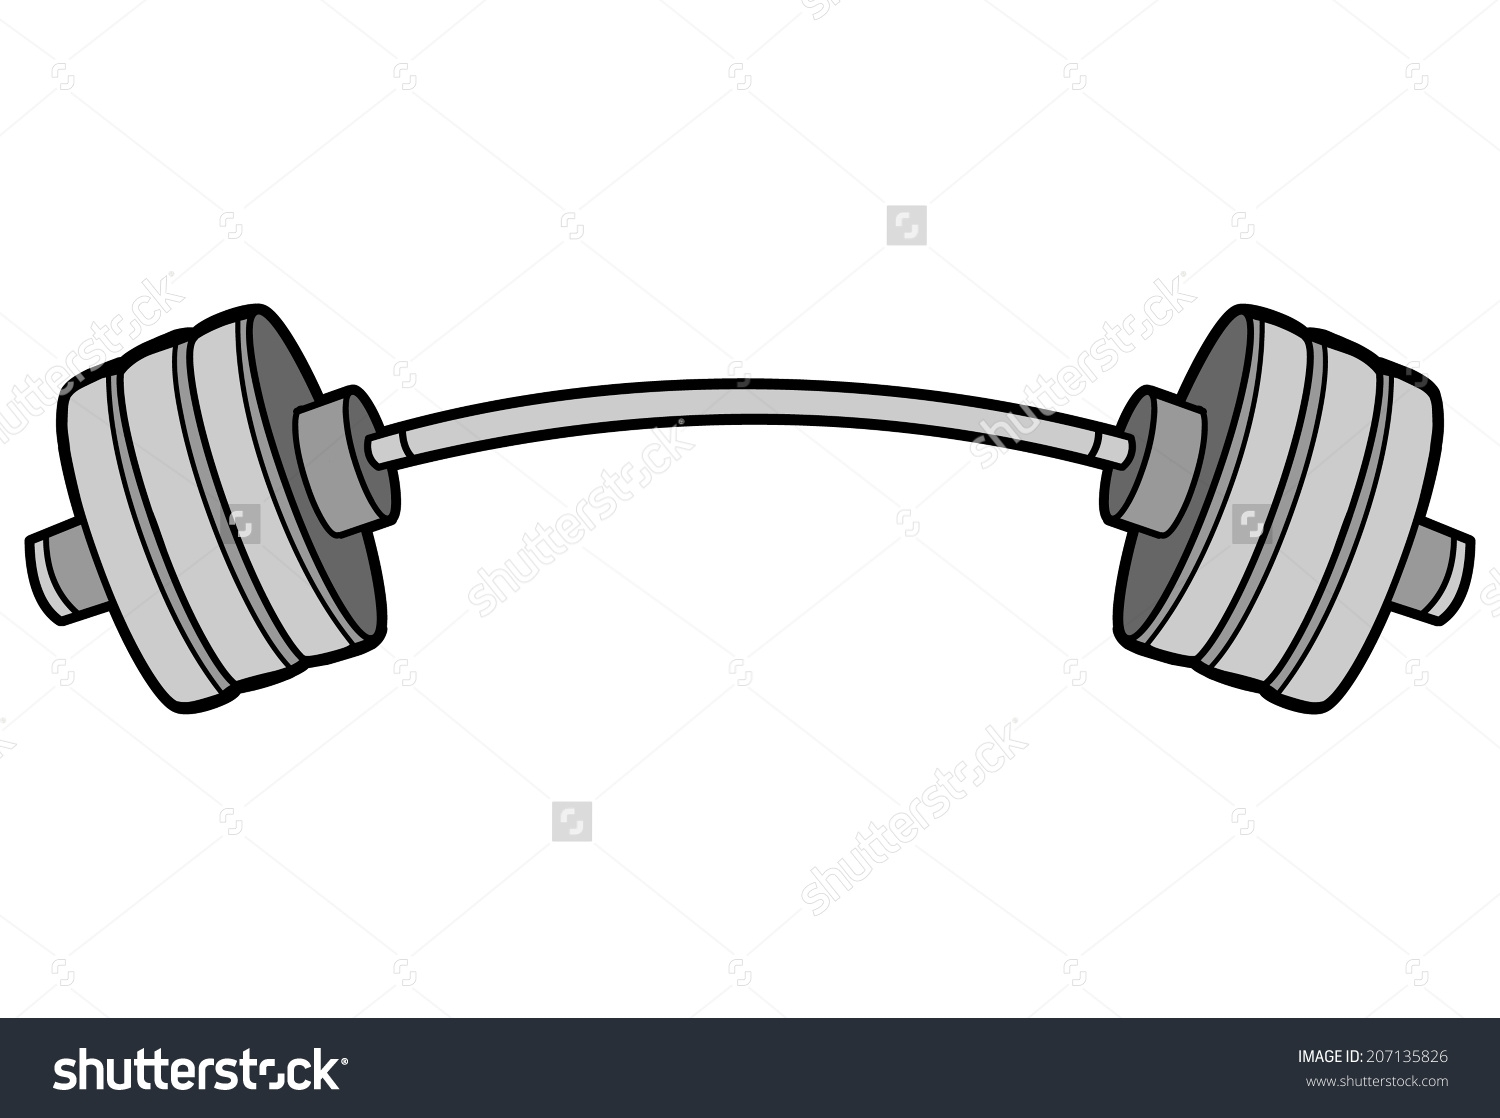 barbell clipart drawing